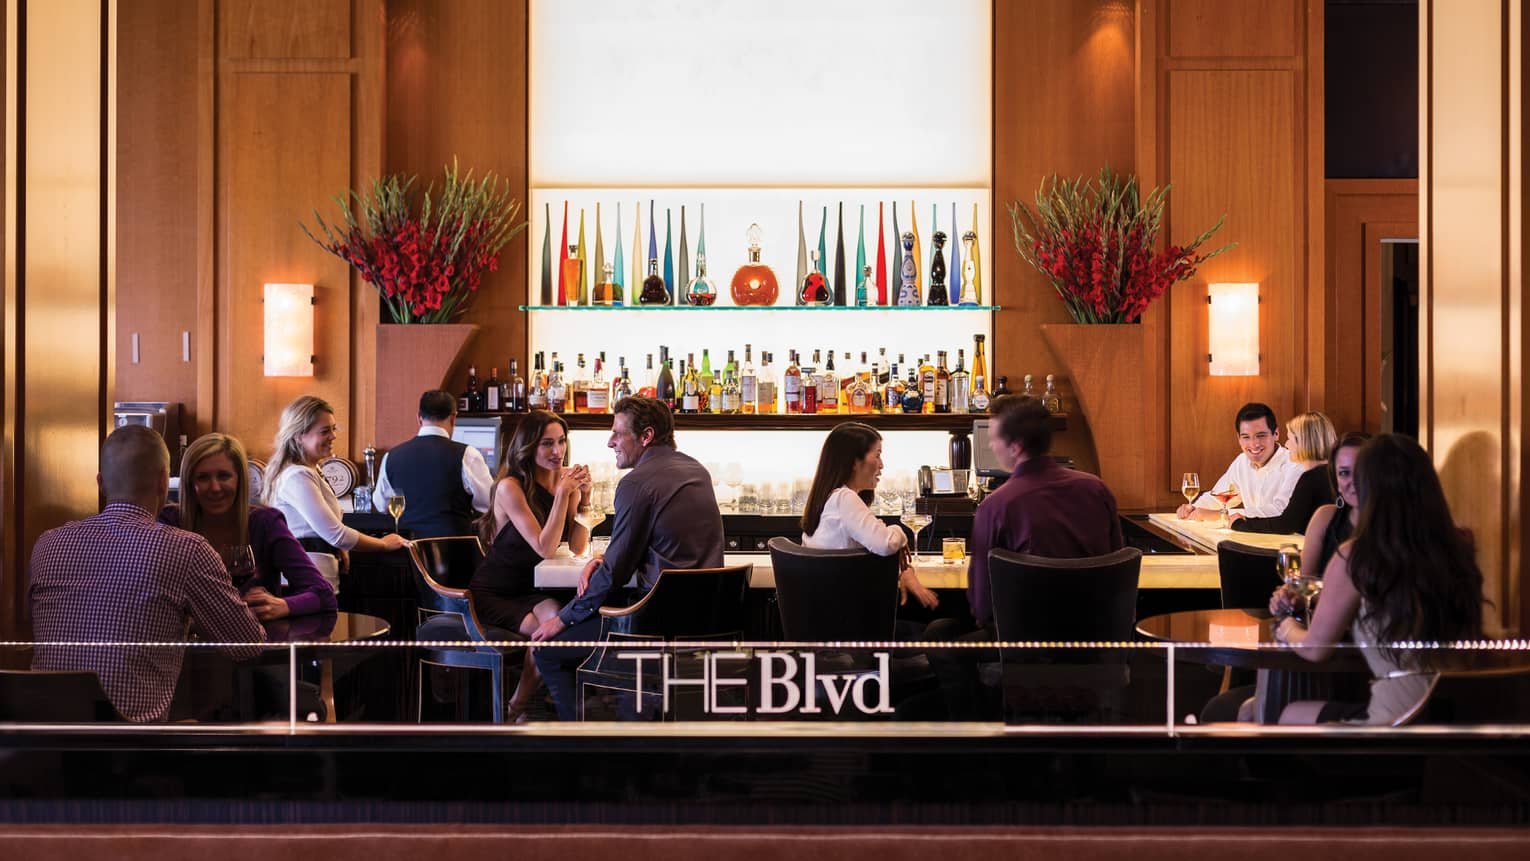 Guests socialize at lounge tables, bar behind The Blvd sign on railing